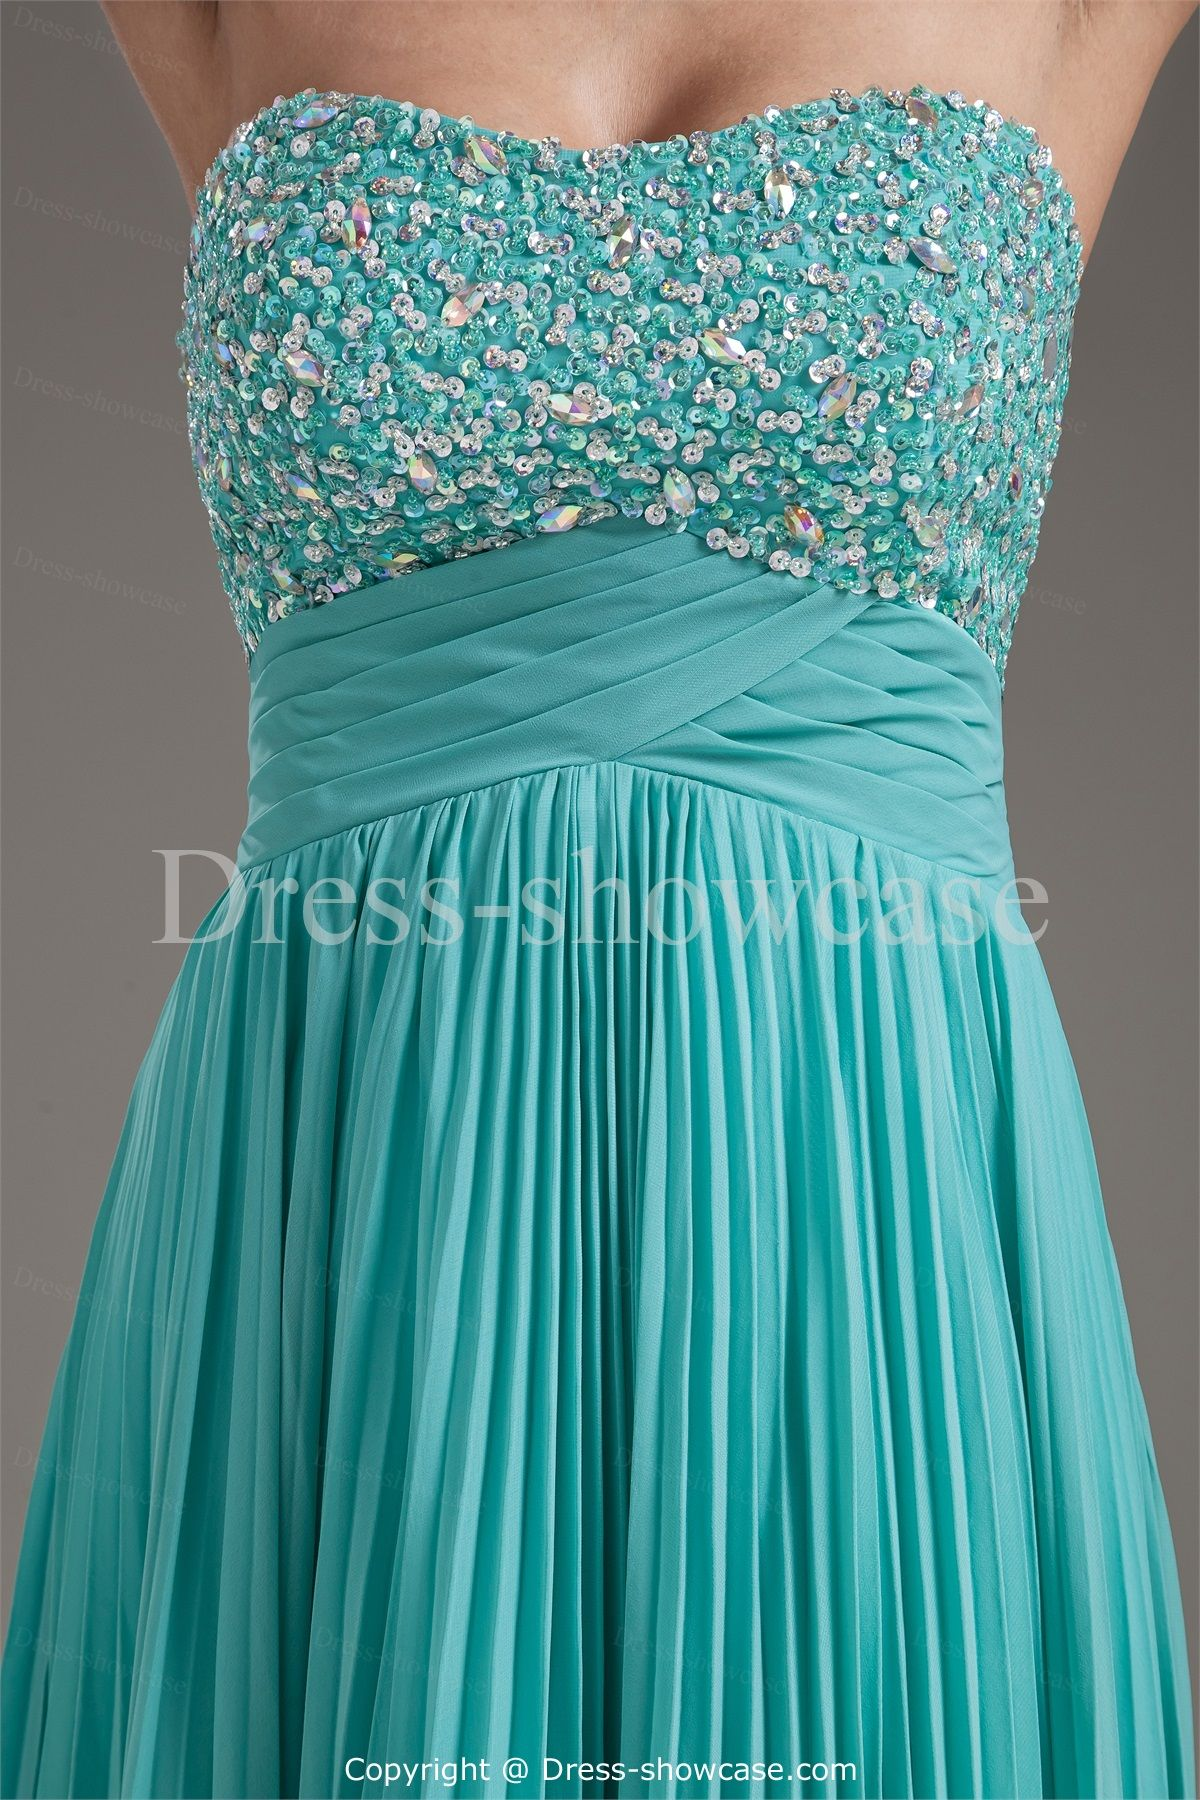 Turquoise and silver wedding dresses turquoise and silver wedding